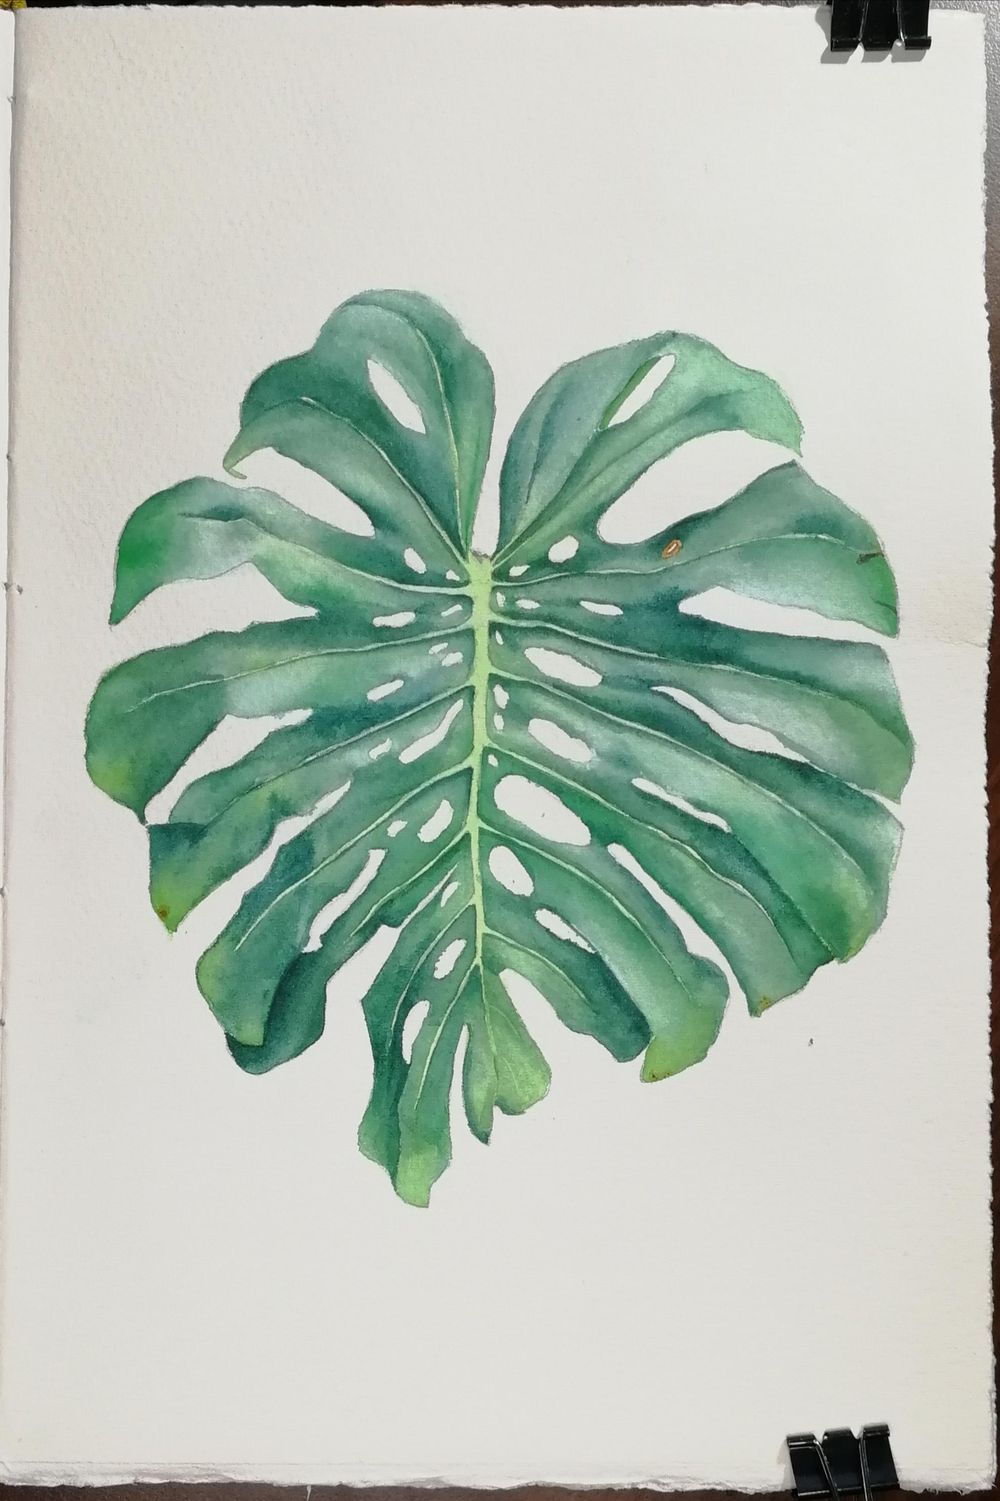 Are montsera leaves the new orchids? - image 6 - student project